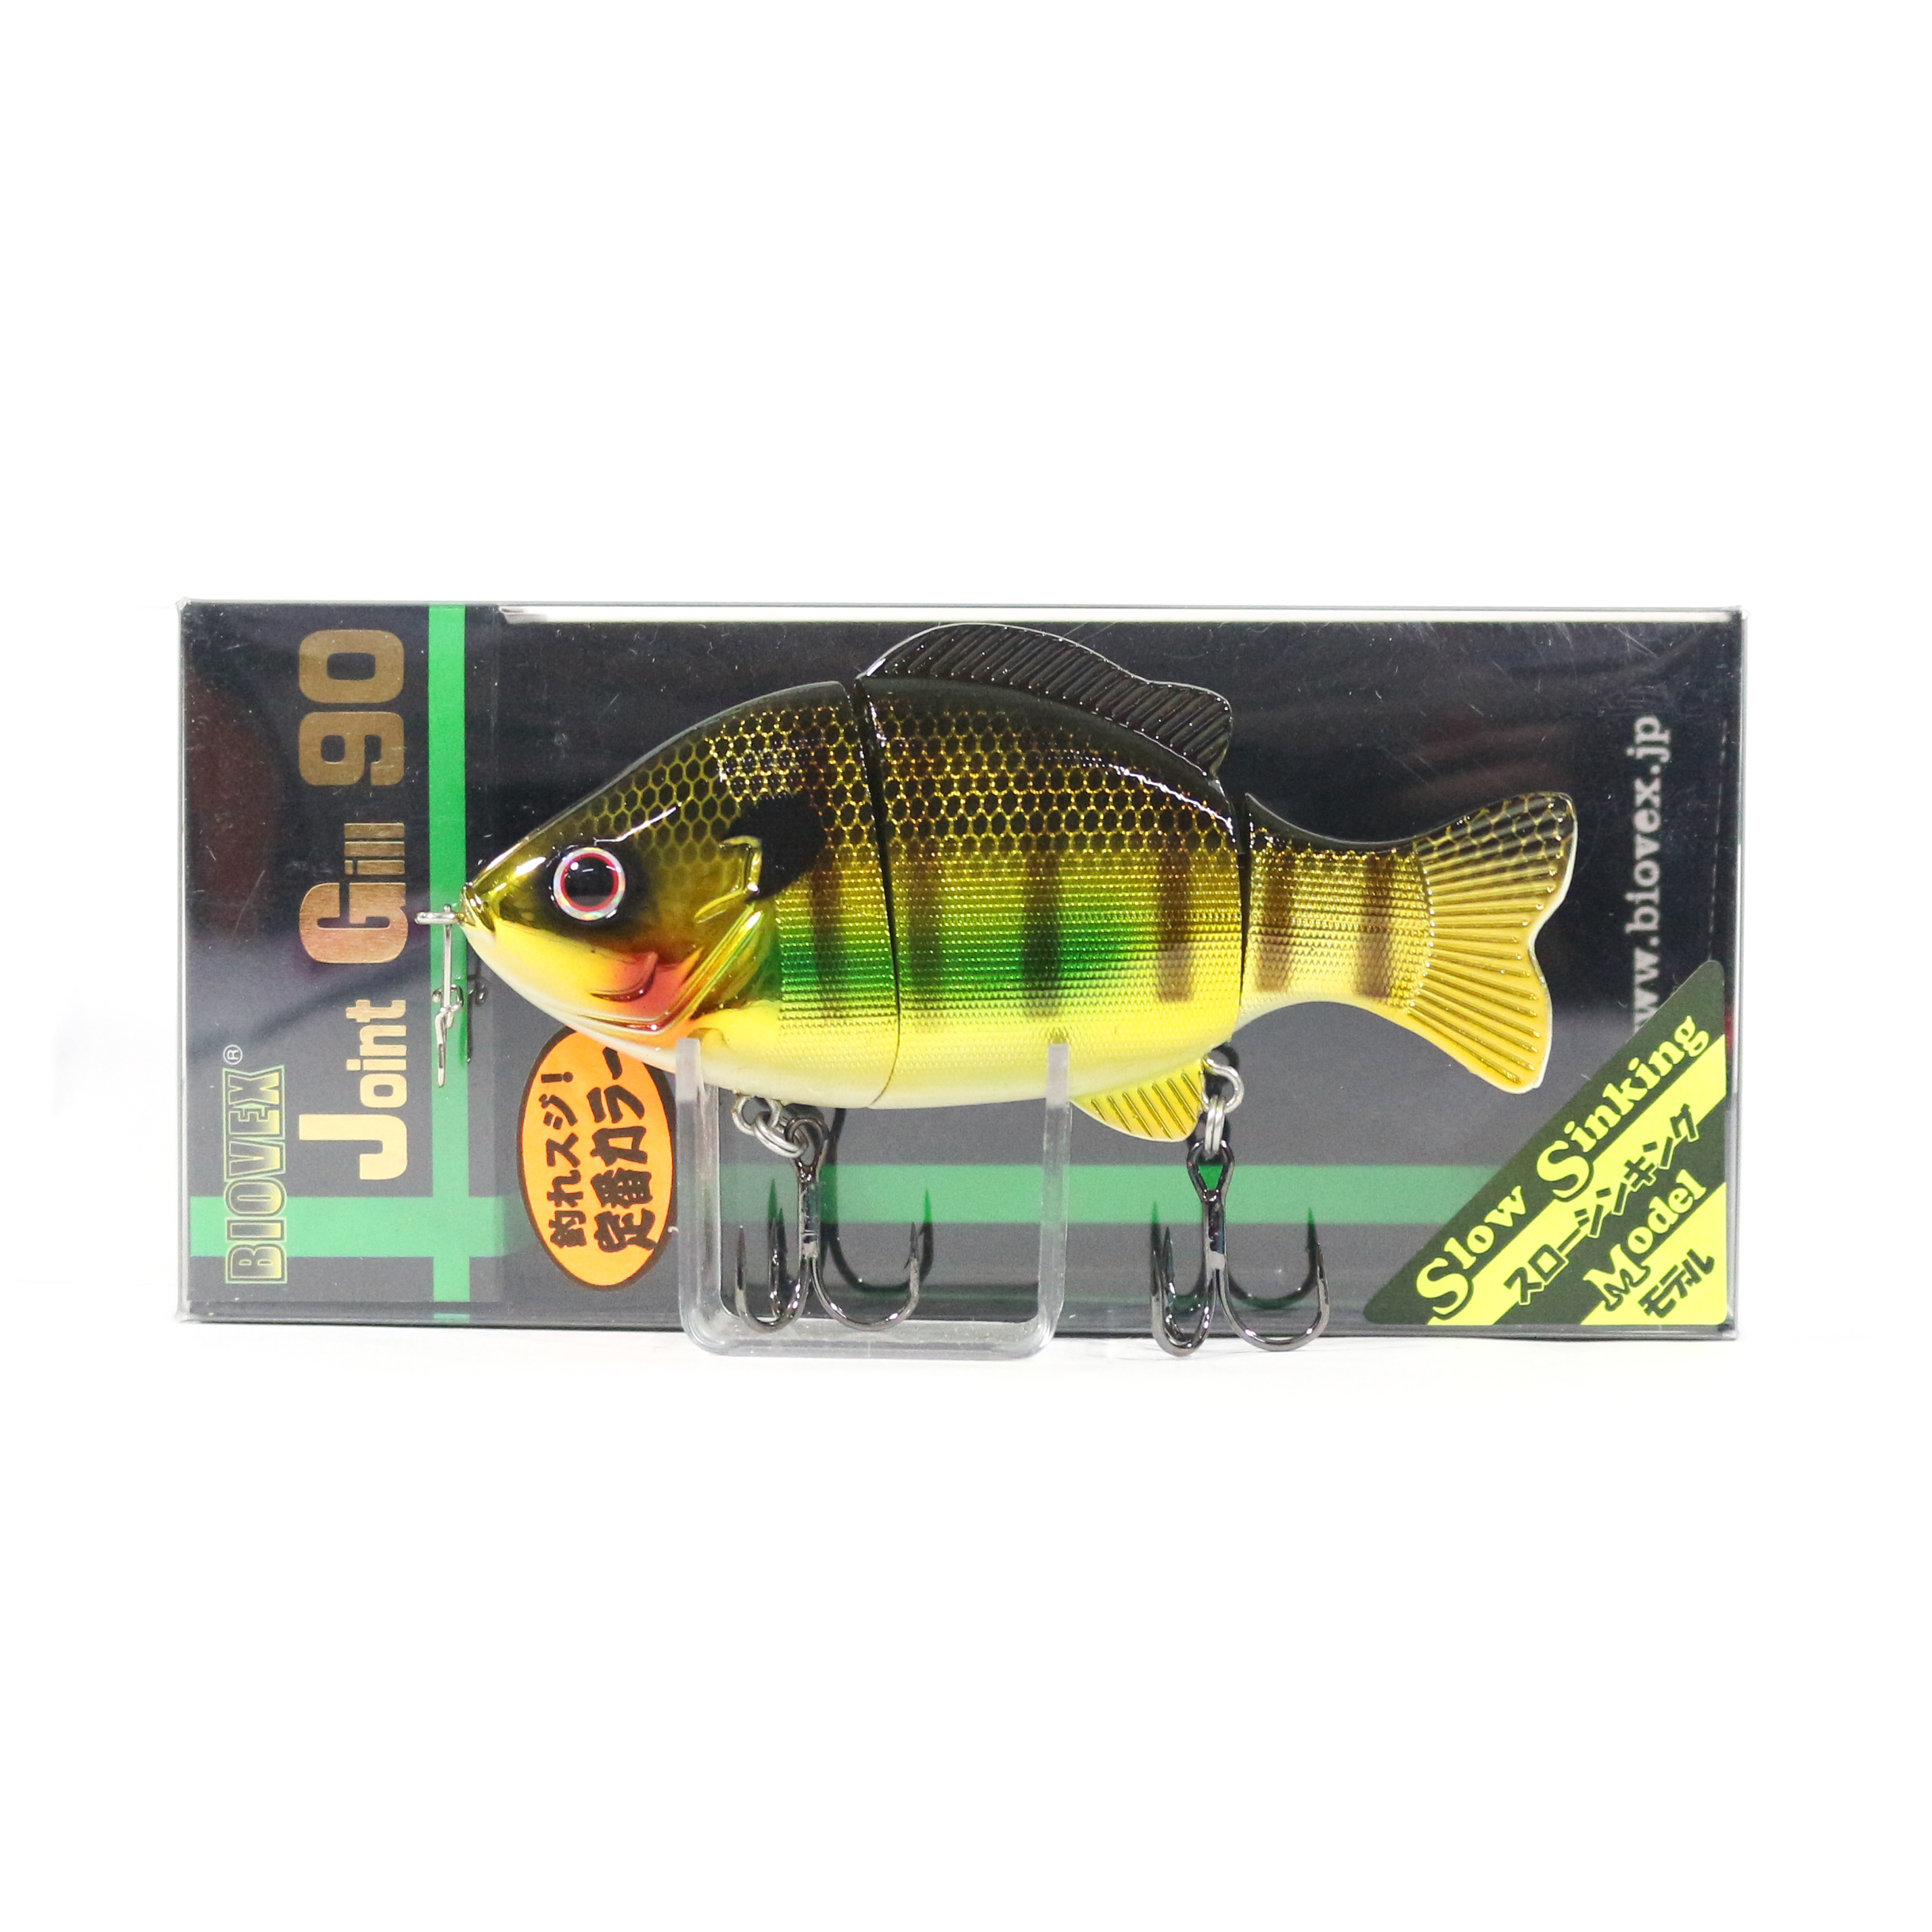 Biovex Joint Gill 90SS Flat Side Slow Sinking Lure 93 (5387)